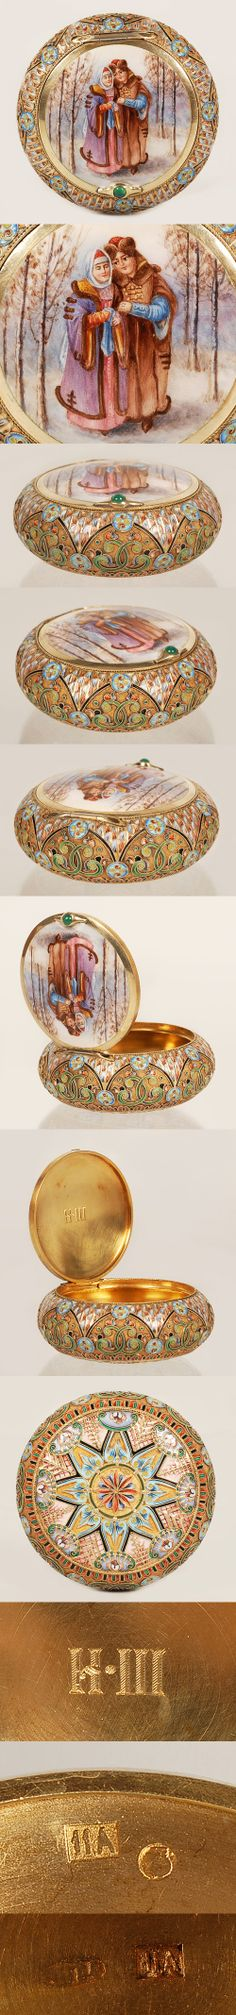 A Russian silver gilt, cloisonne and enplein enamel snuff box, 11th Artel, Moscow,circa 1908-1917. Of circular form, the hinged lid painted en plein with a pictoral enamel scene of a Russian man and woman in costume sttanding in a grove of trees on snow covered ground. The sides and bottom are enameled with geometric and floral motifs